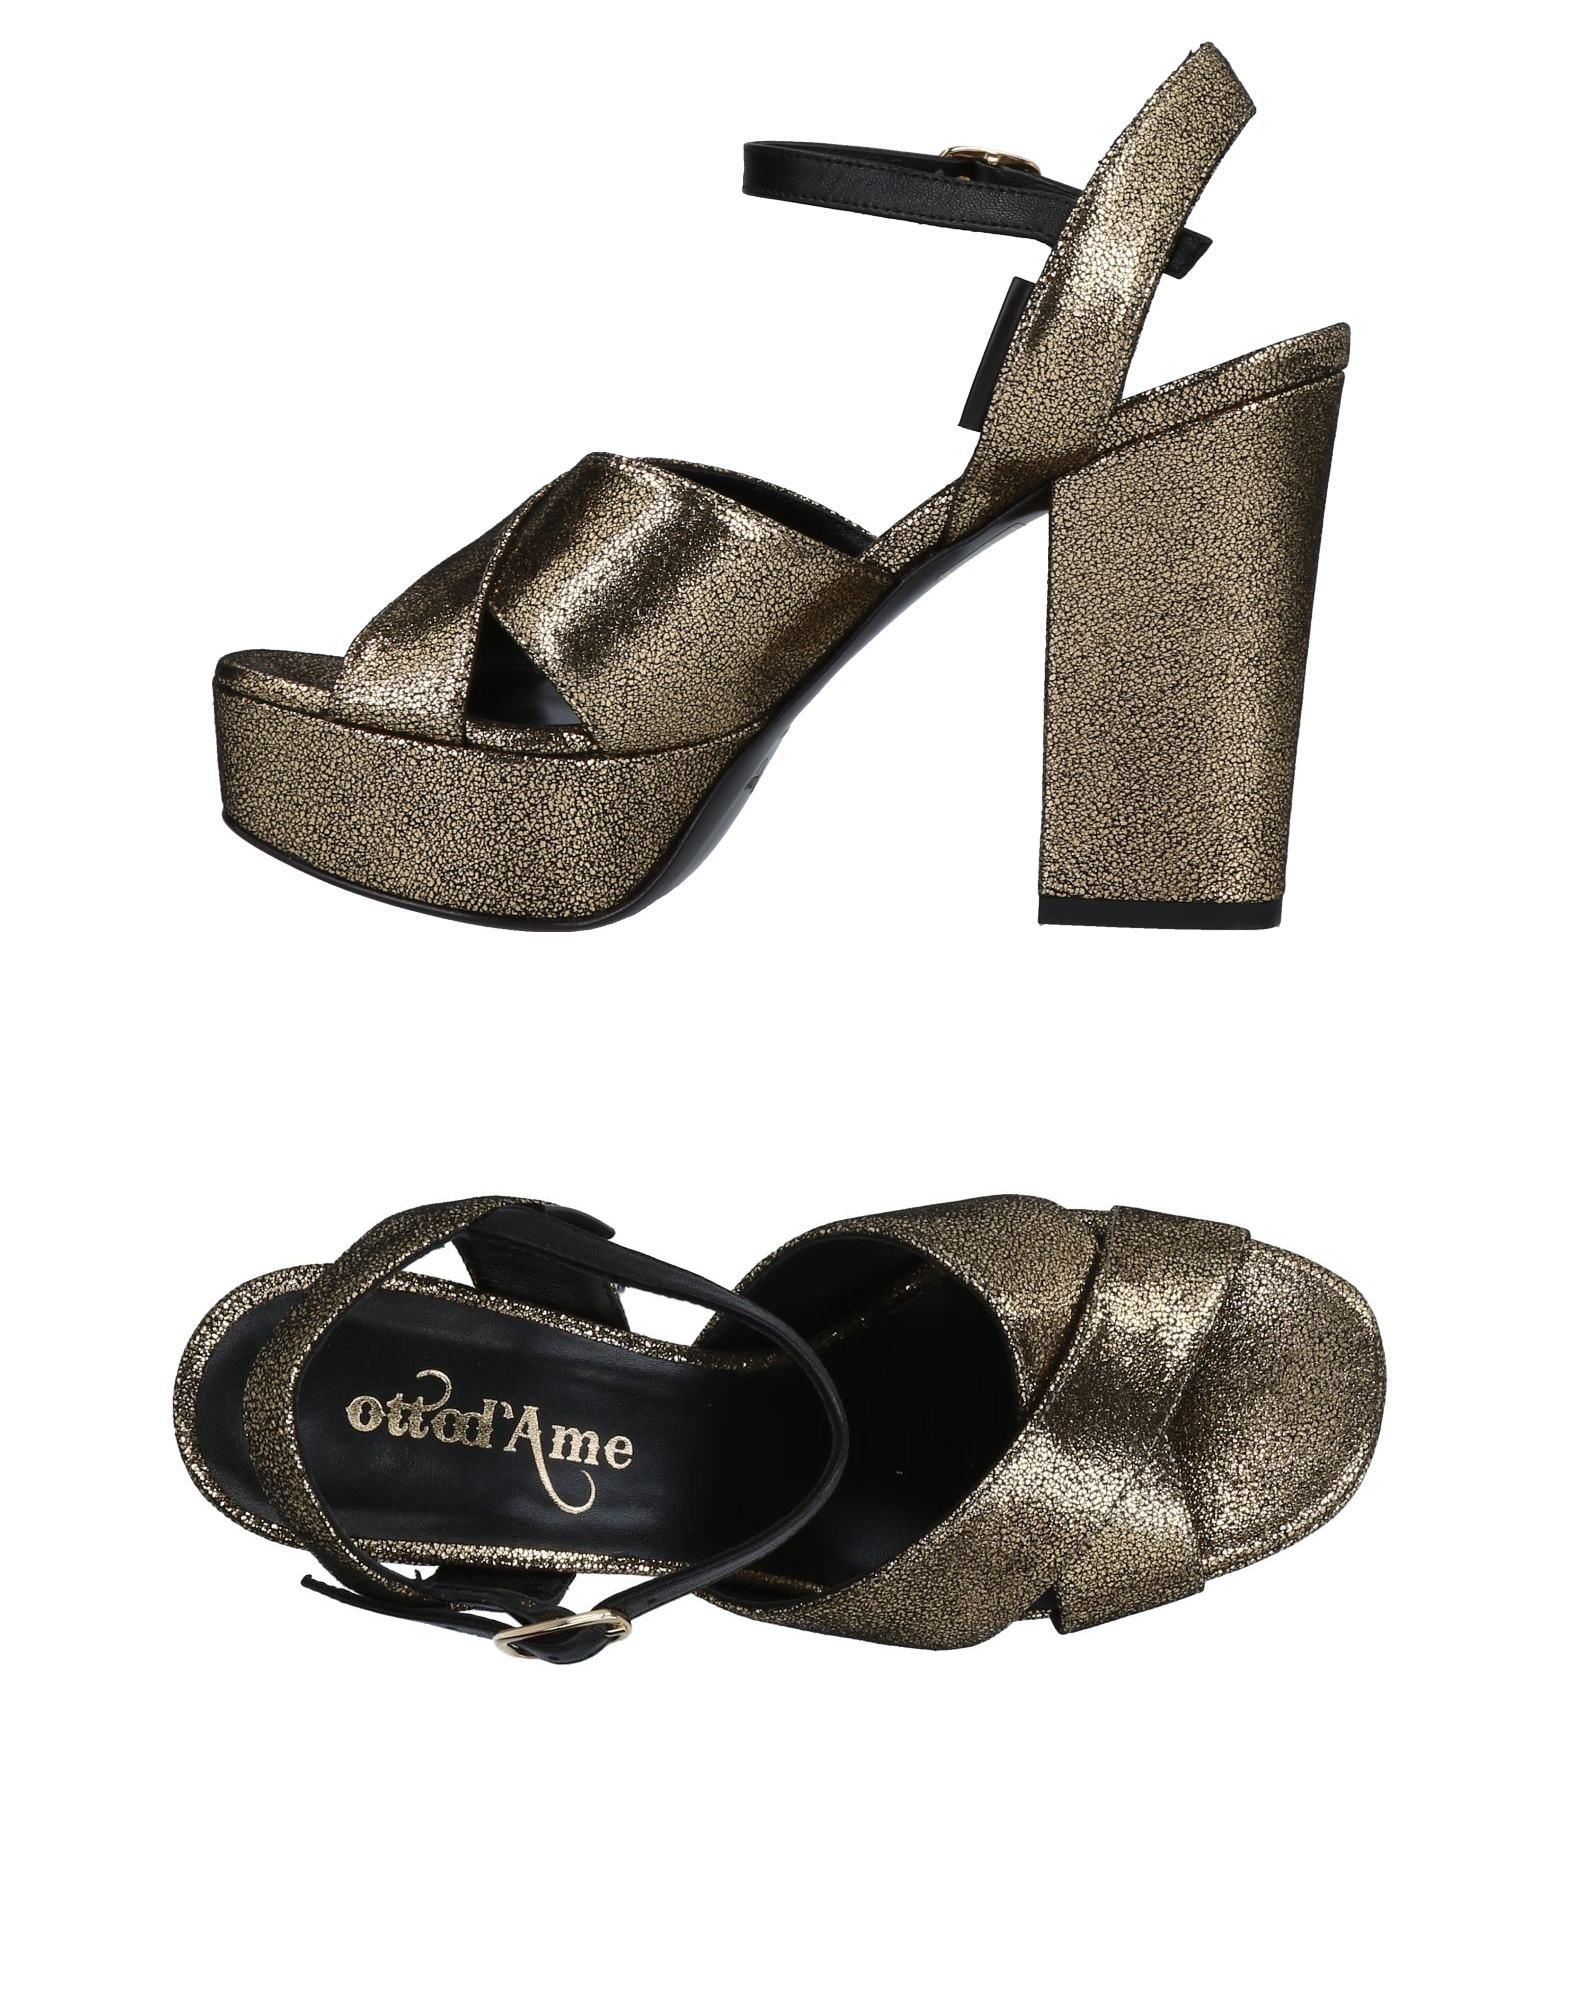 OTTOD'AME Sandals in Gold